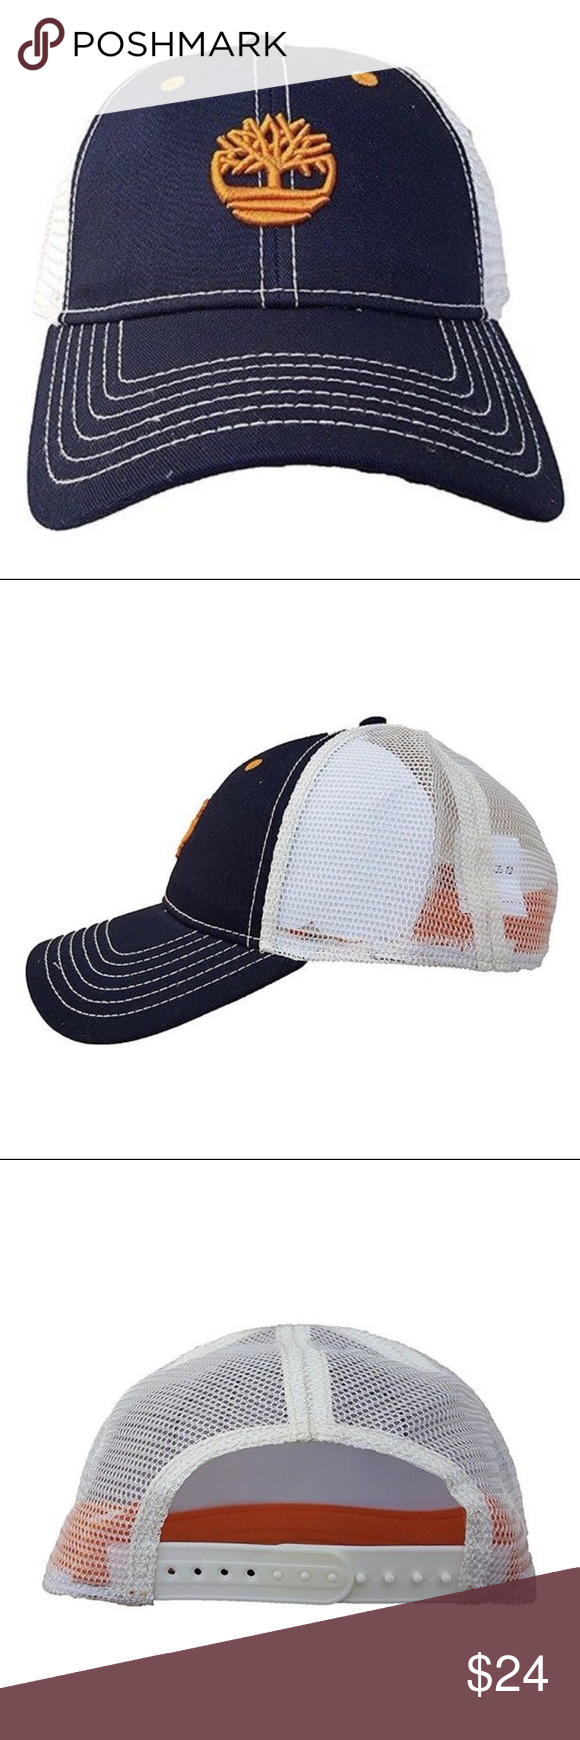 373e368a359 Timberland Men s Cotton Twill Trucker Cap NEW Timberland Men s Cotton Twill  Trucker Cap White Orange